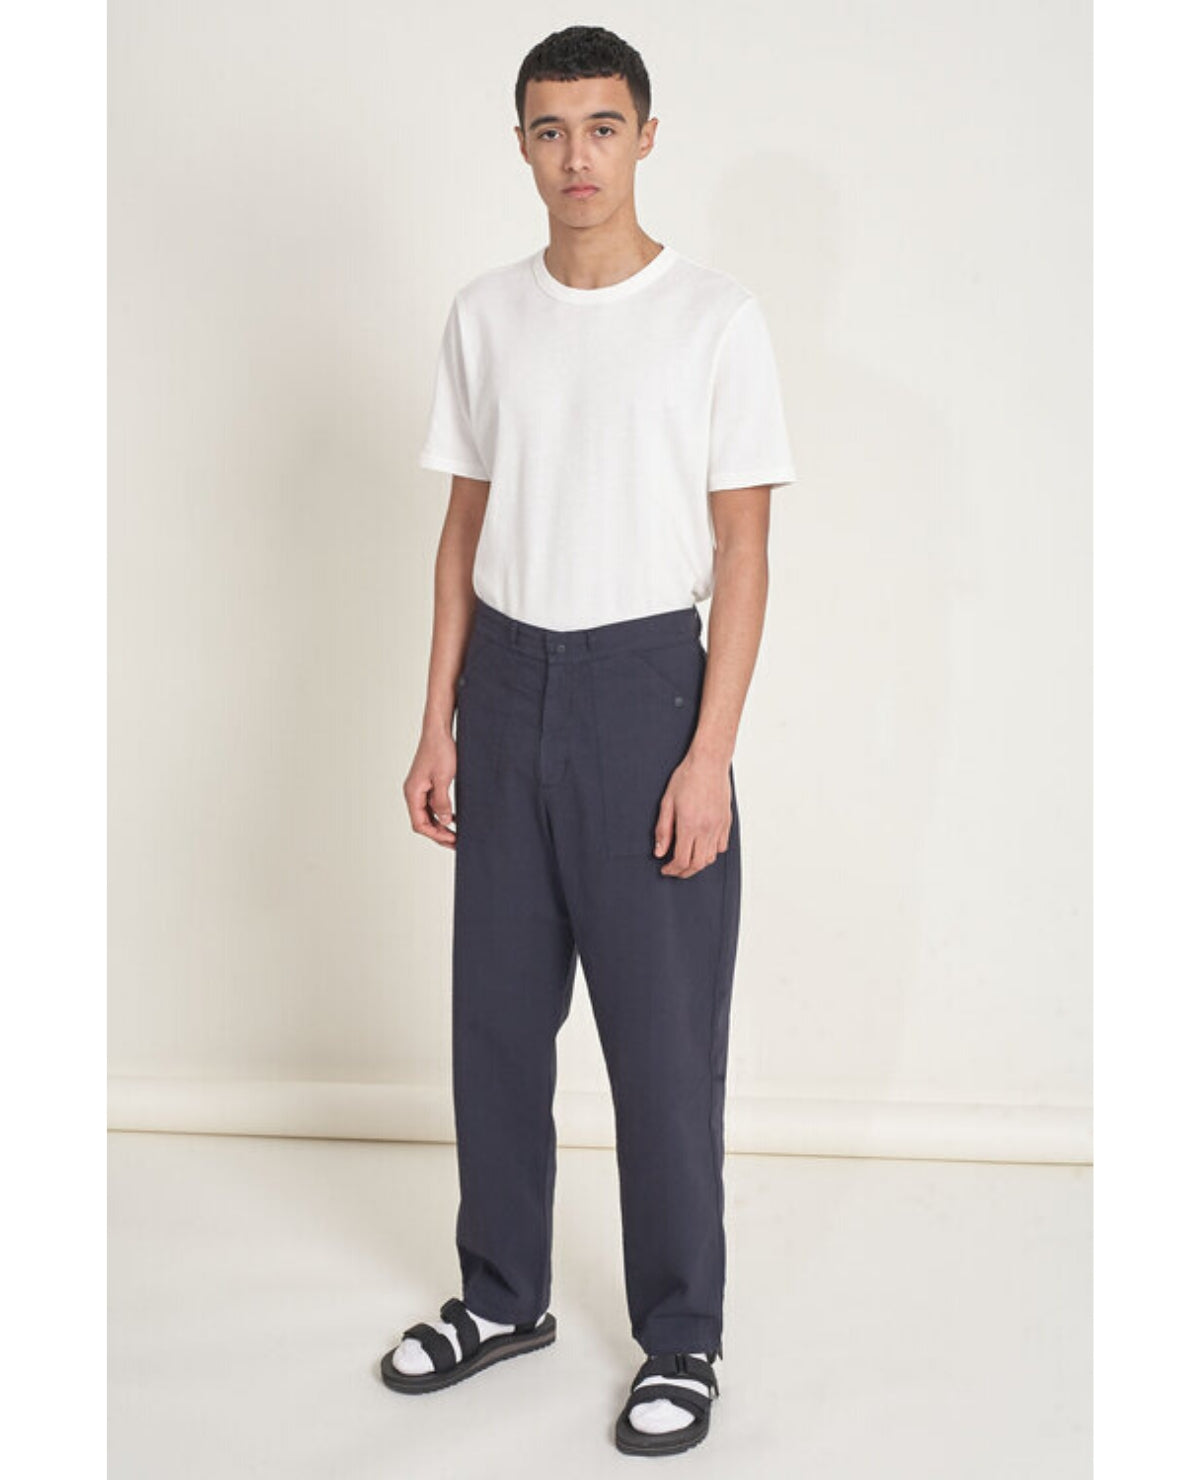 LES BASICS Le Patch Pant / Navy